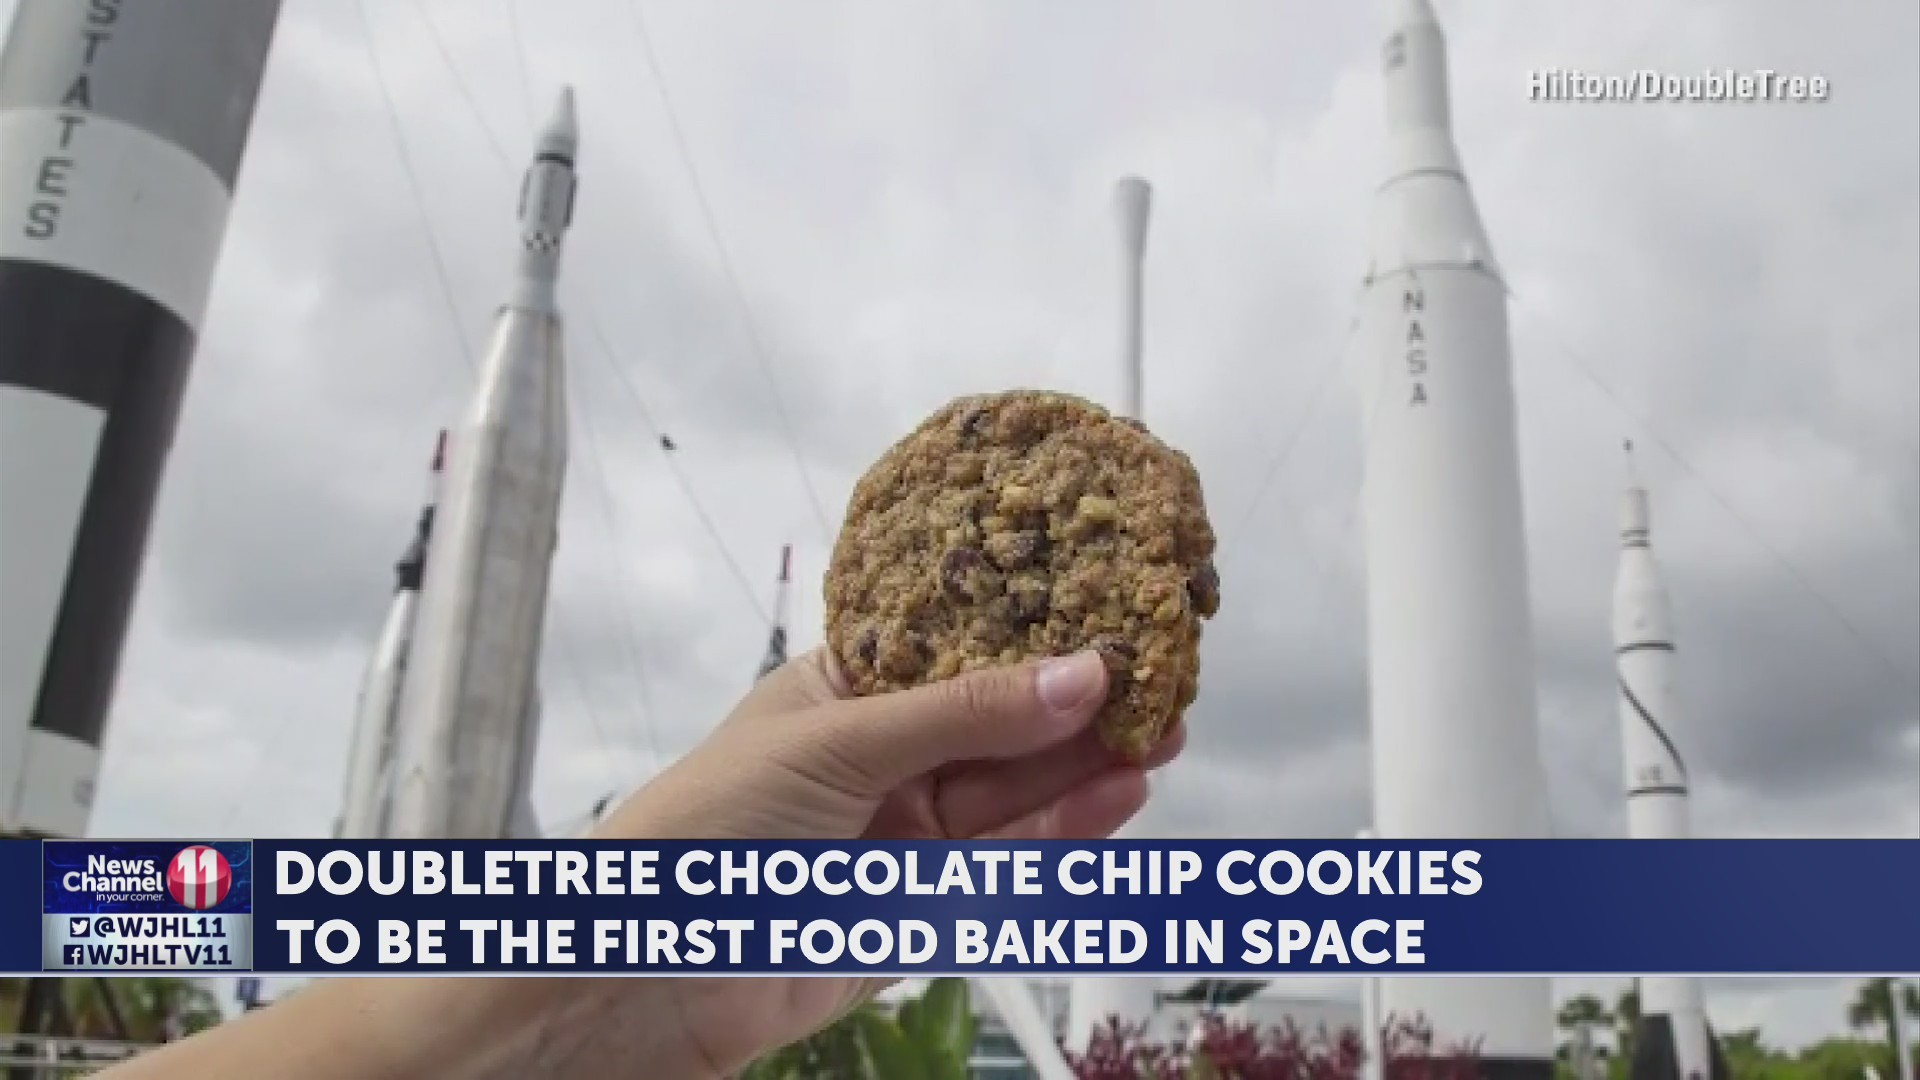 DoubleTree chocolate chip cookies to be the first food baked in space